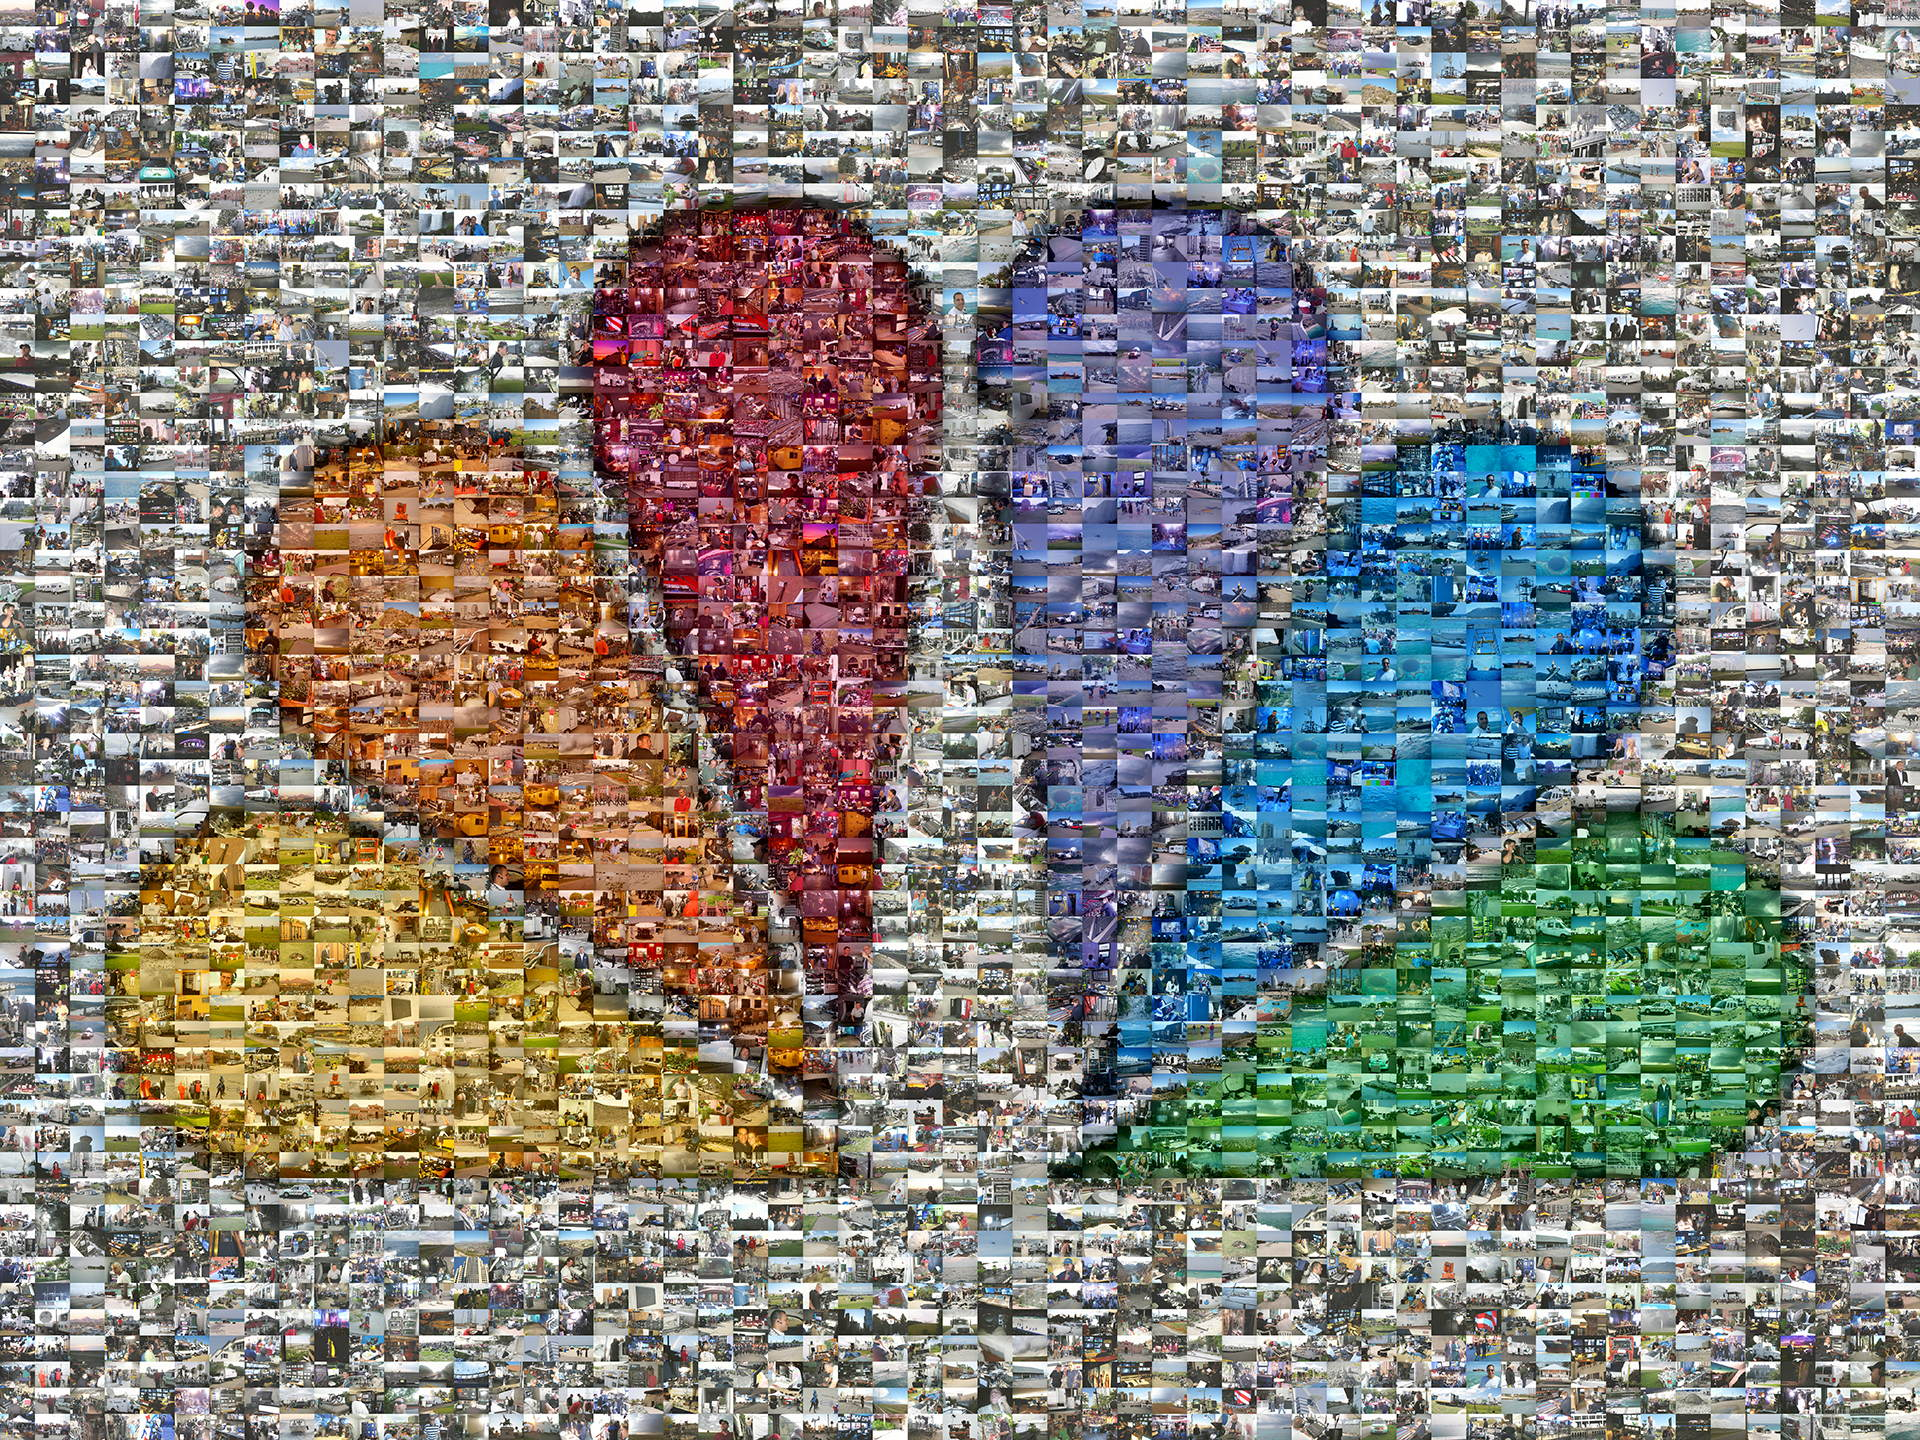 photo mosaic Famous NBC peacock mosaic using 1,951 photos of NBC behind the scenes